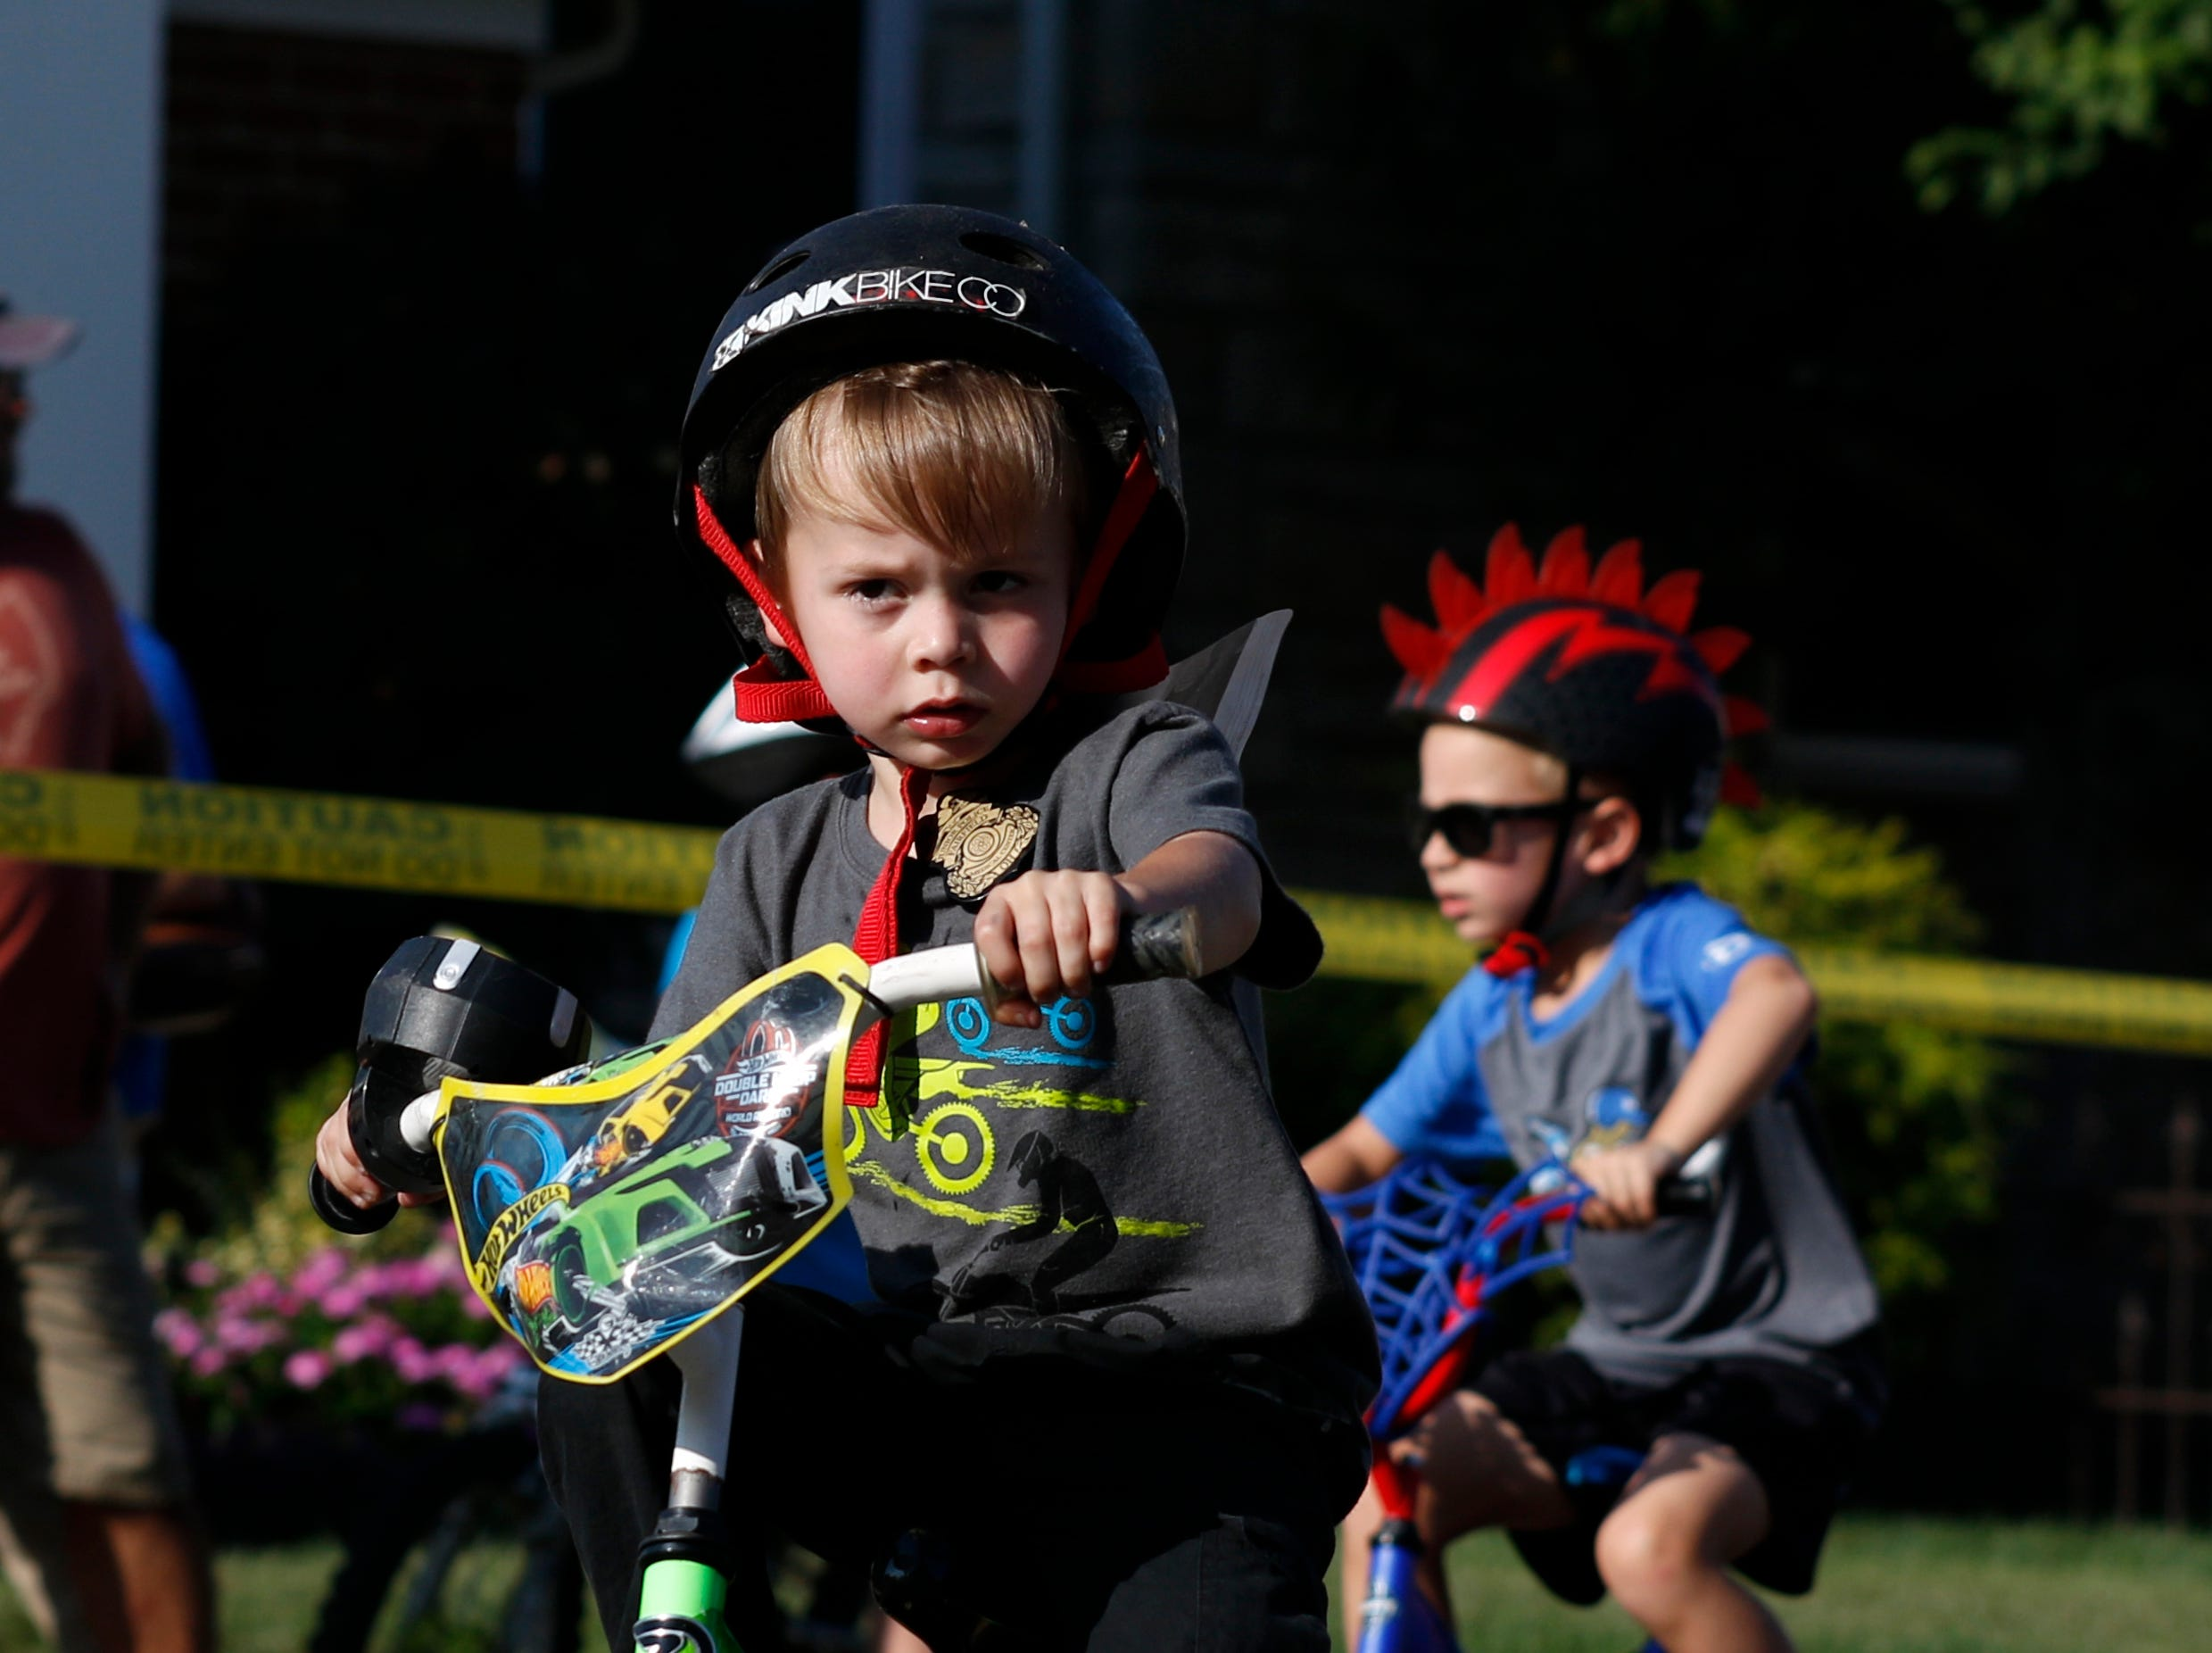 The 25th annual Lancaster Festival Children's Bicycle race took place Friday evening, July 27, 2018, in downtown Lancaster.